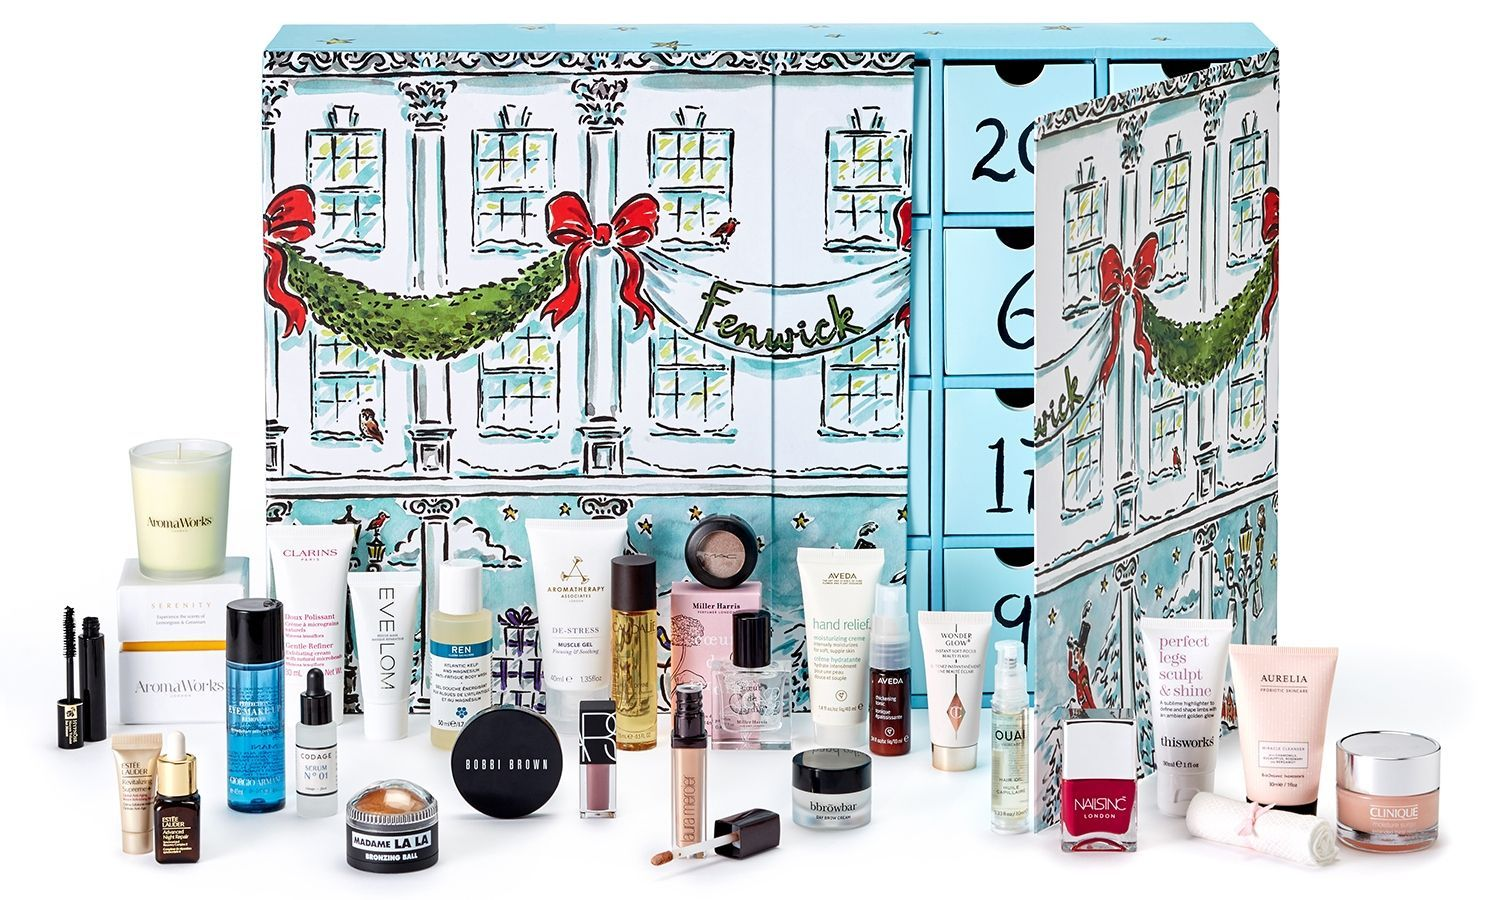 PSA FeelUnique just announced their 2020 beauty advent